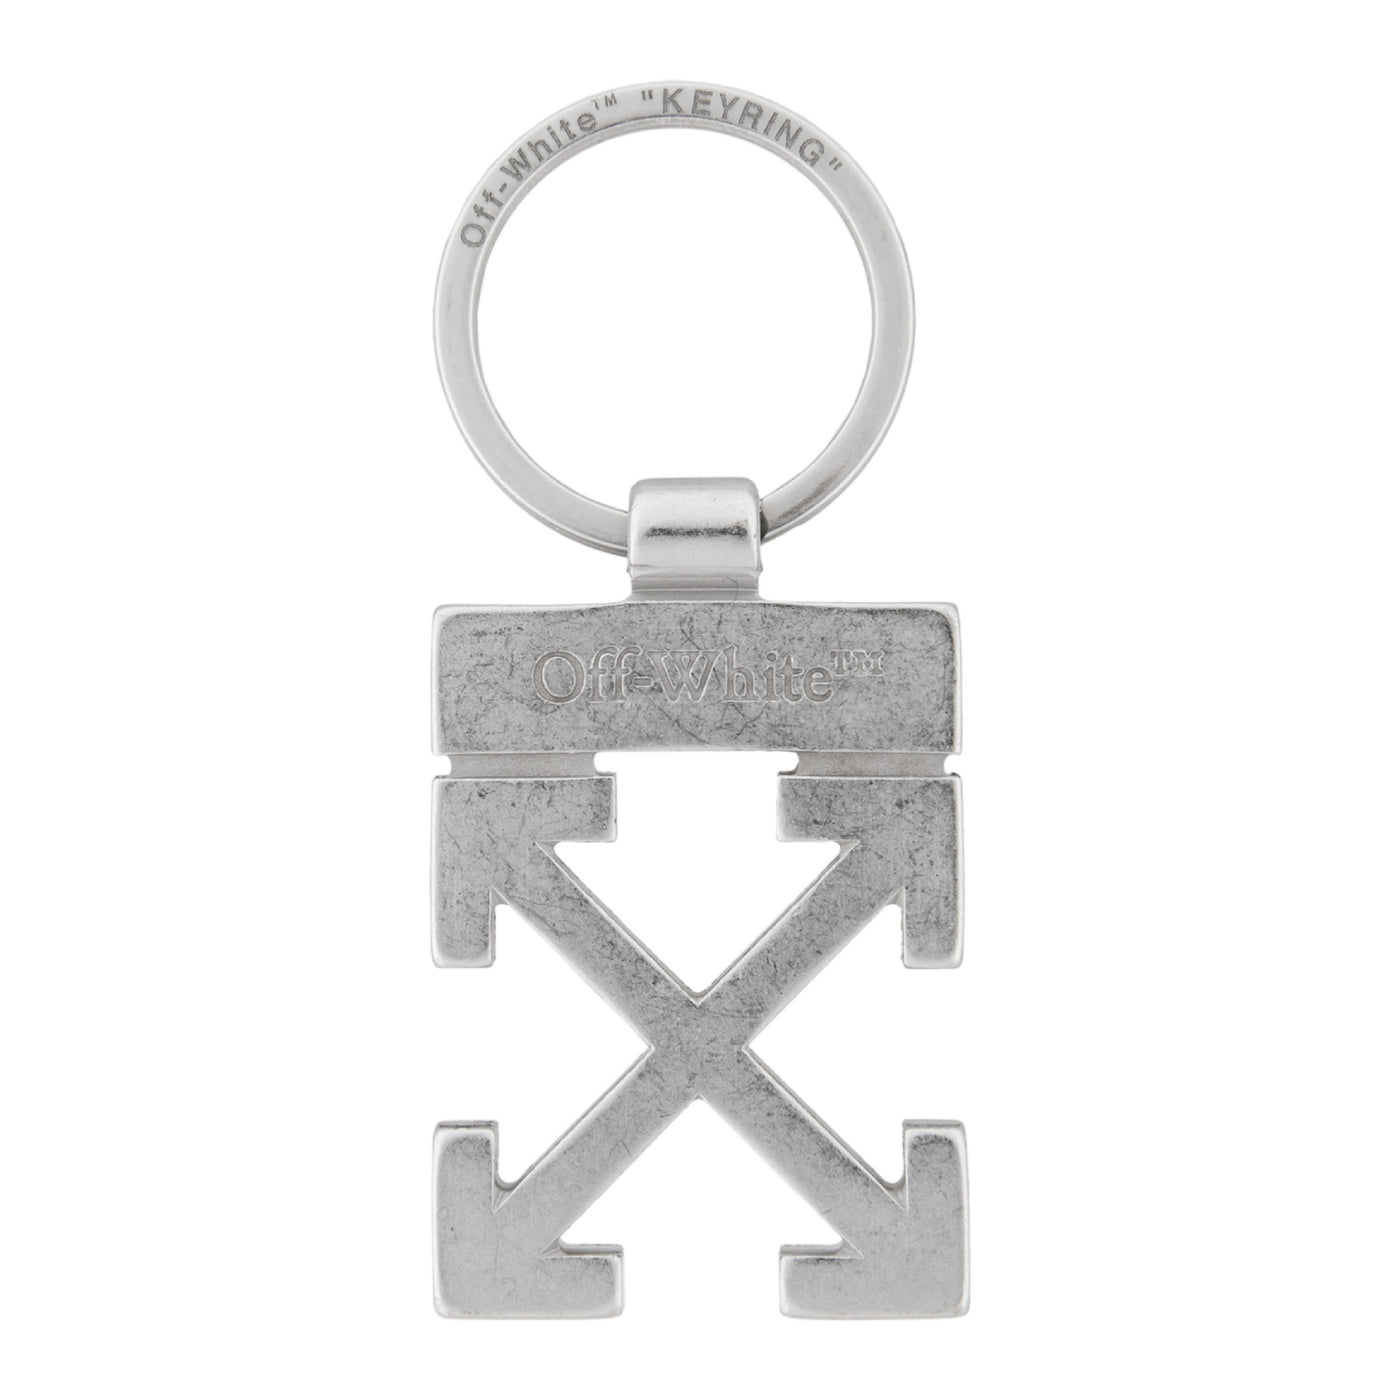 Load image into Gallery viewer, OFF-WHITE ARROWS KEY HOLDER SILVER